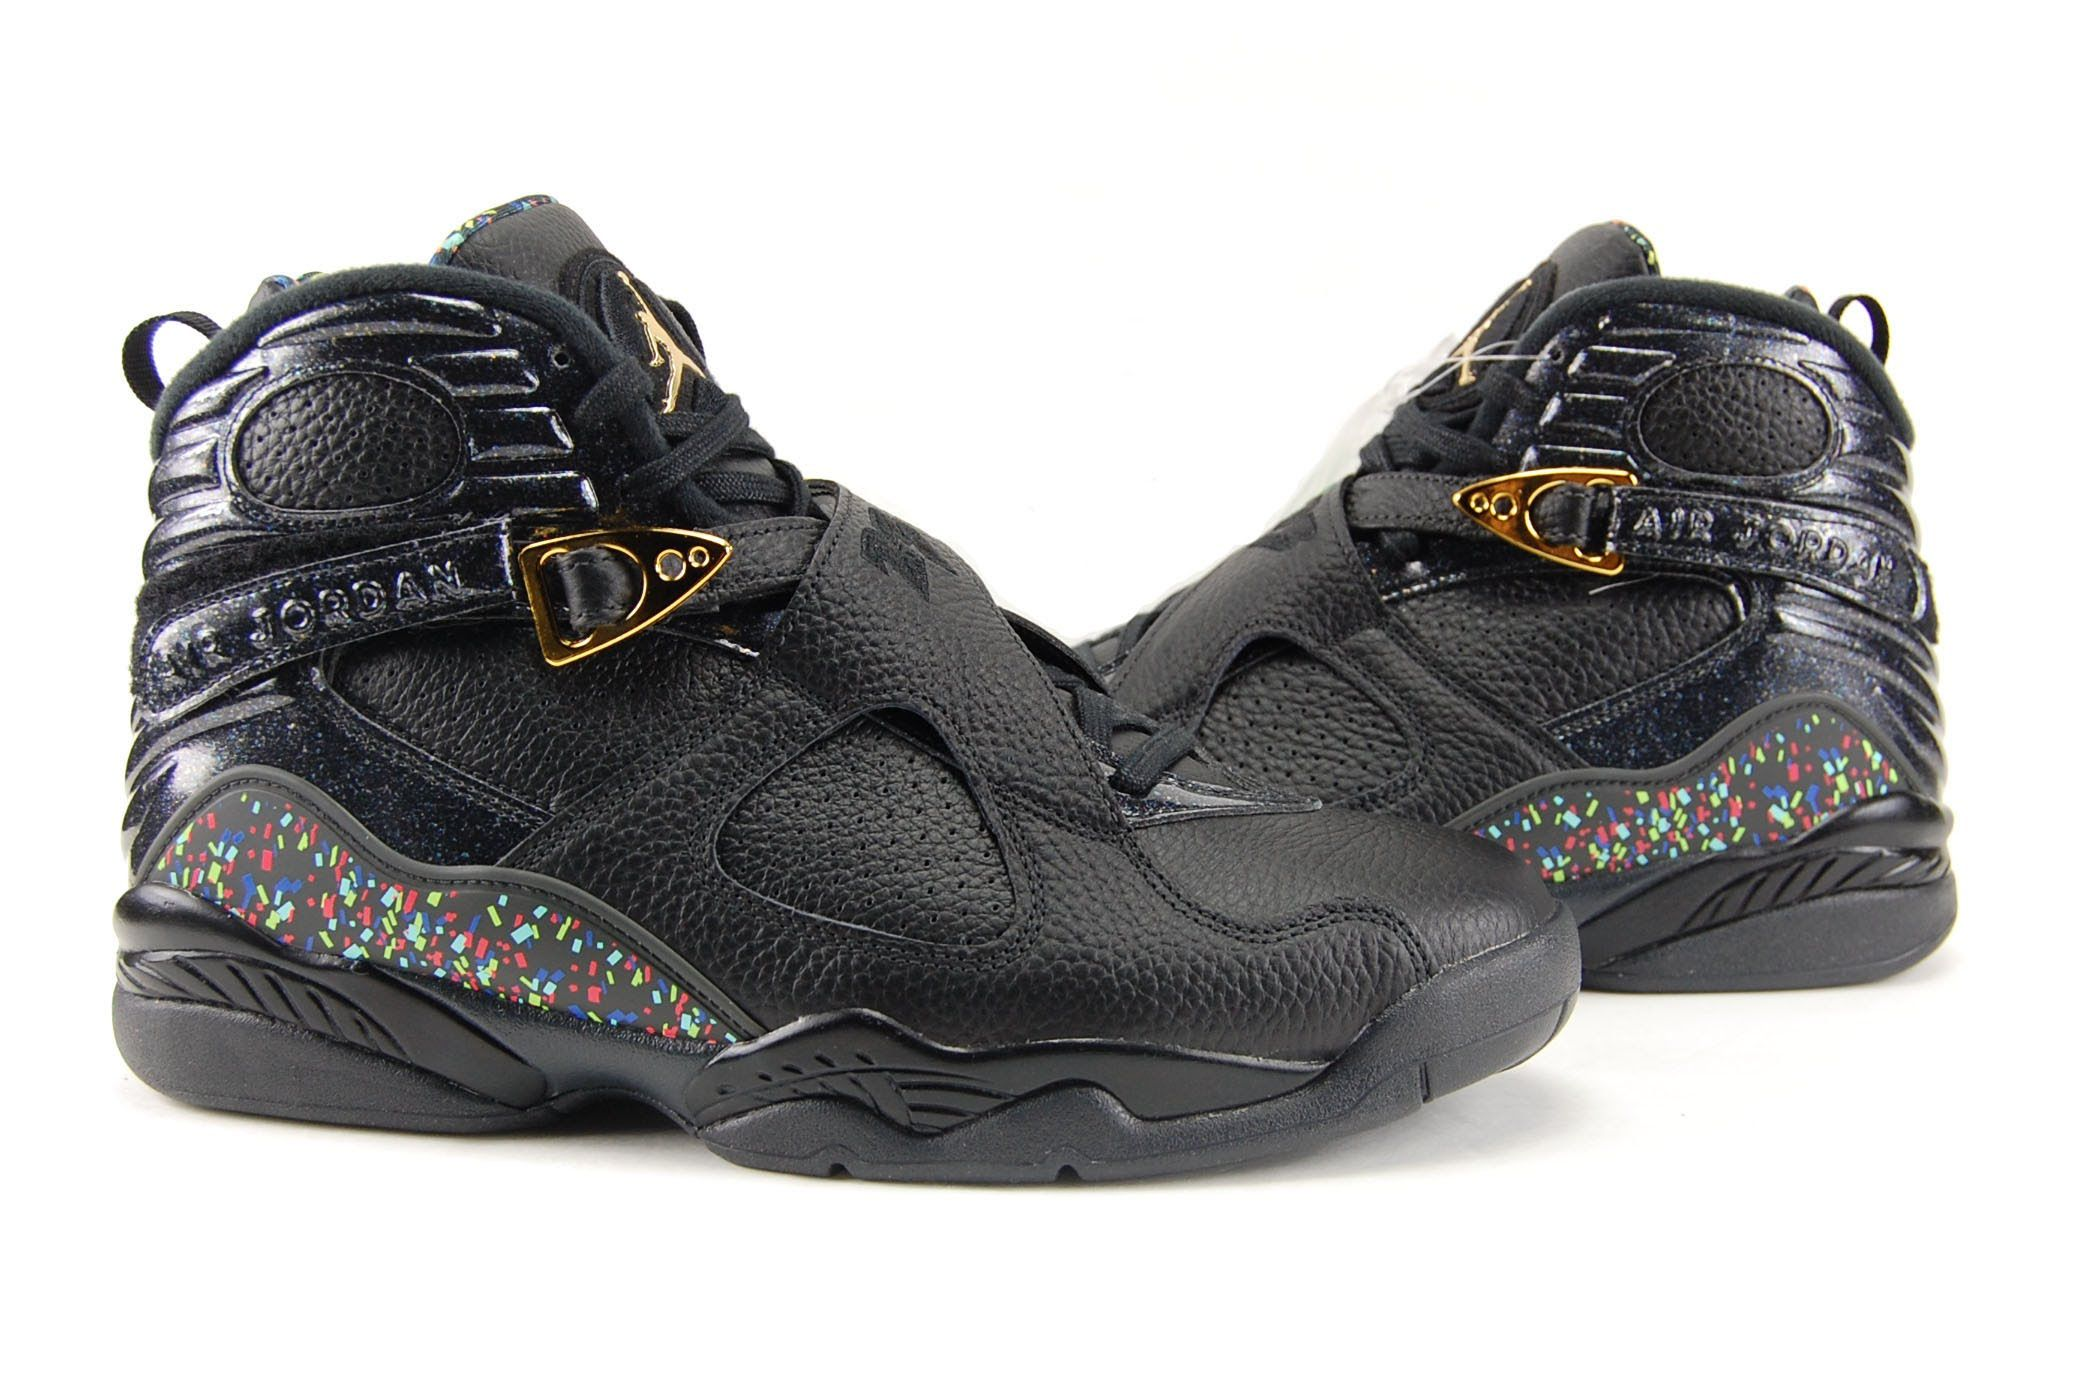 Video: Air Jordan 8 Confetti. Make sure to Subscribe http://www